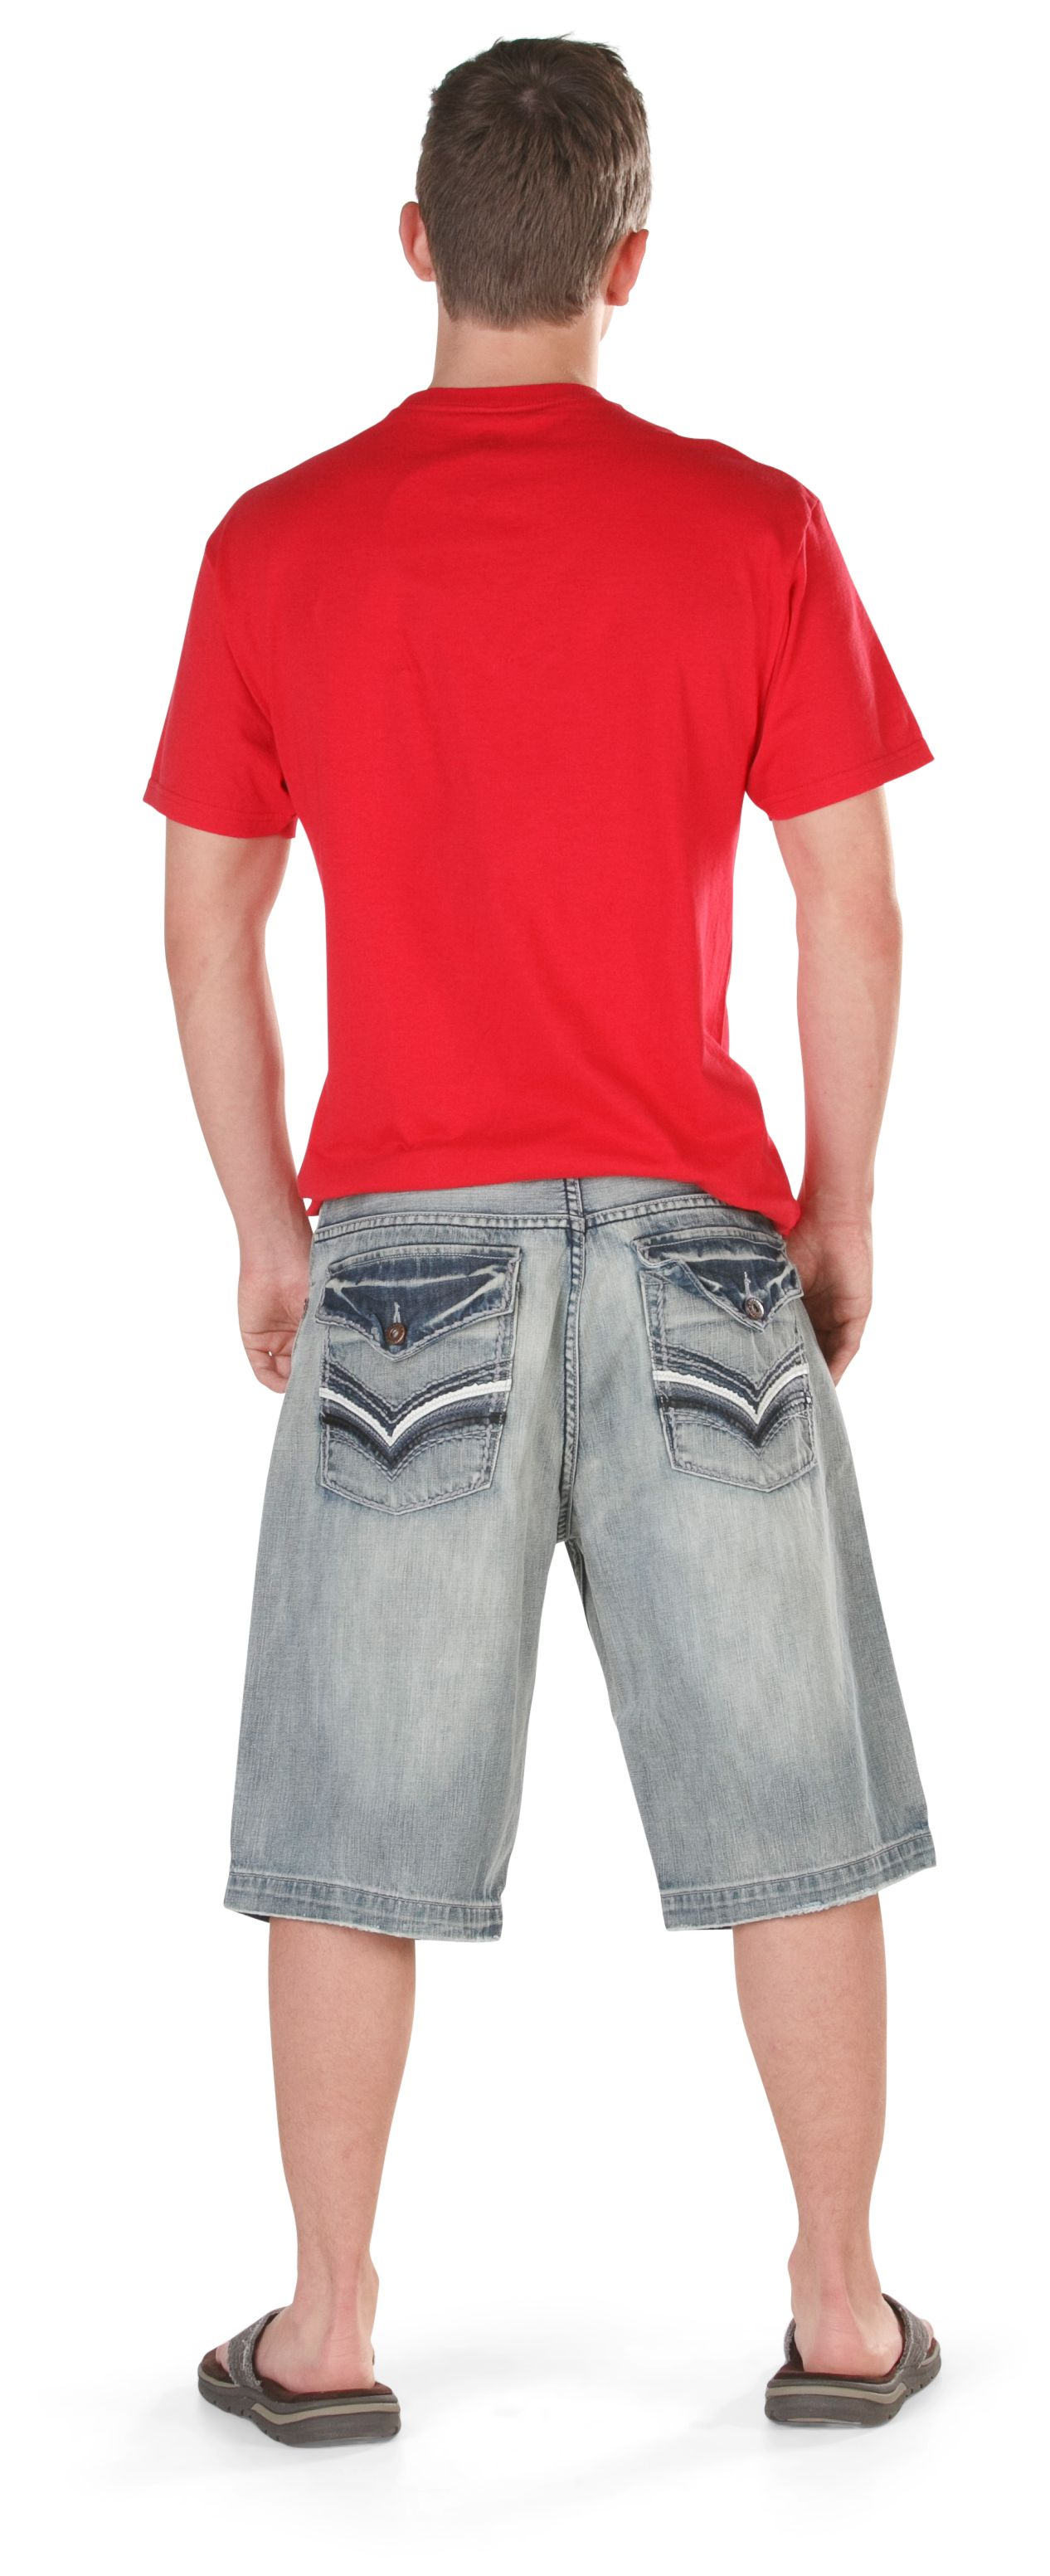 He'll love the light wash and cool back pocket styling of these shorts. #gordmans #youngmens #style #jeansplease